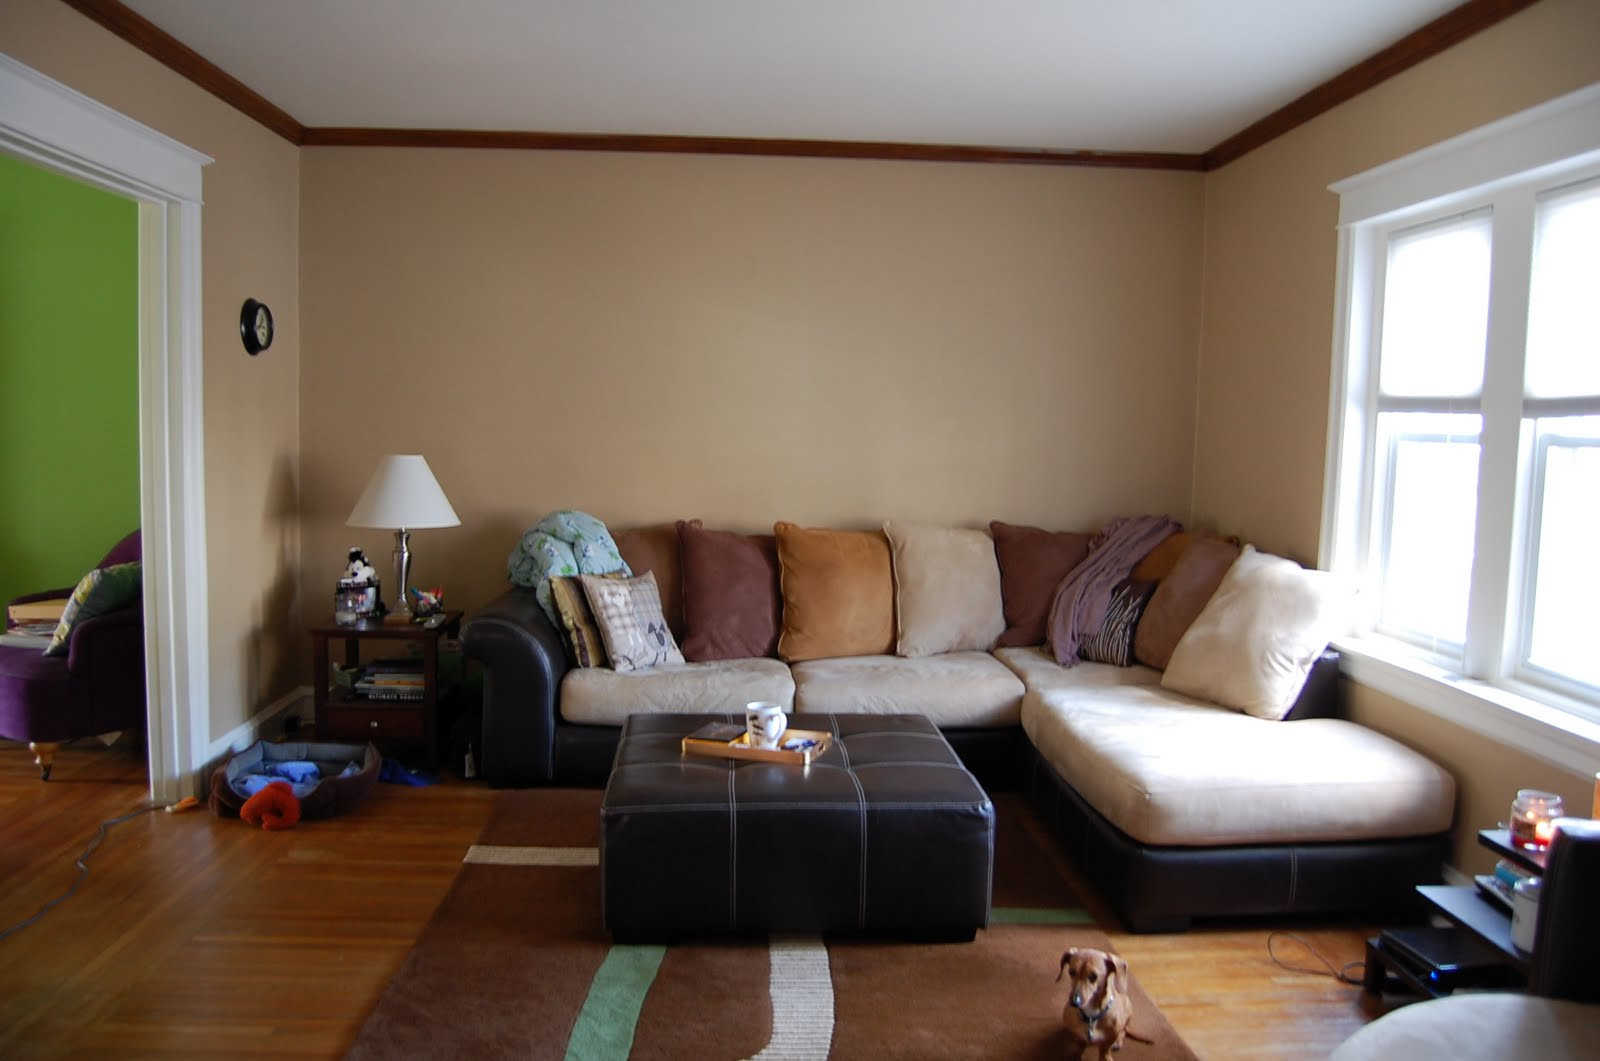 Best ideas about Living Room Wall . Save or Pin Tempest in a Blue Teapot Living room help needed Now.